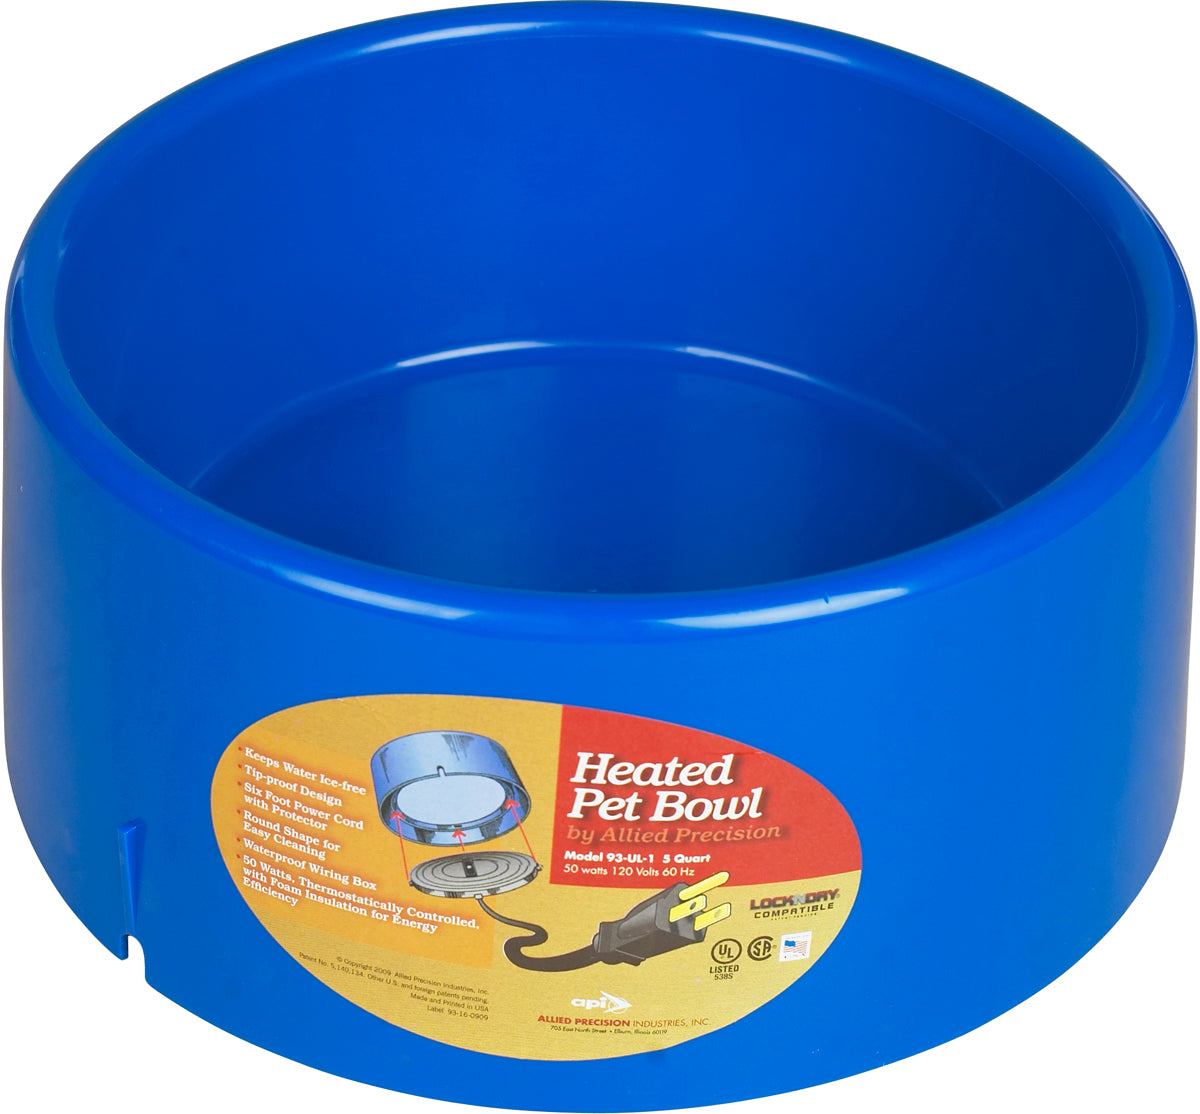 Allied Precision Heated Plastic 5 Quart Pet Bowl Farm & Ranch - Animal Care Teskeys Teskeys